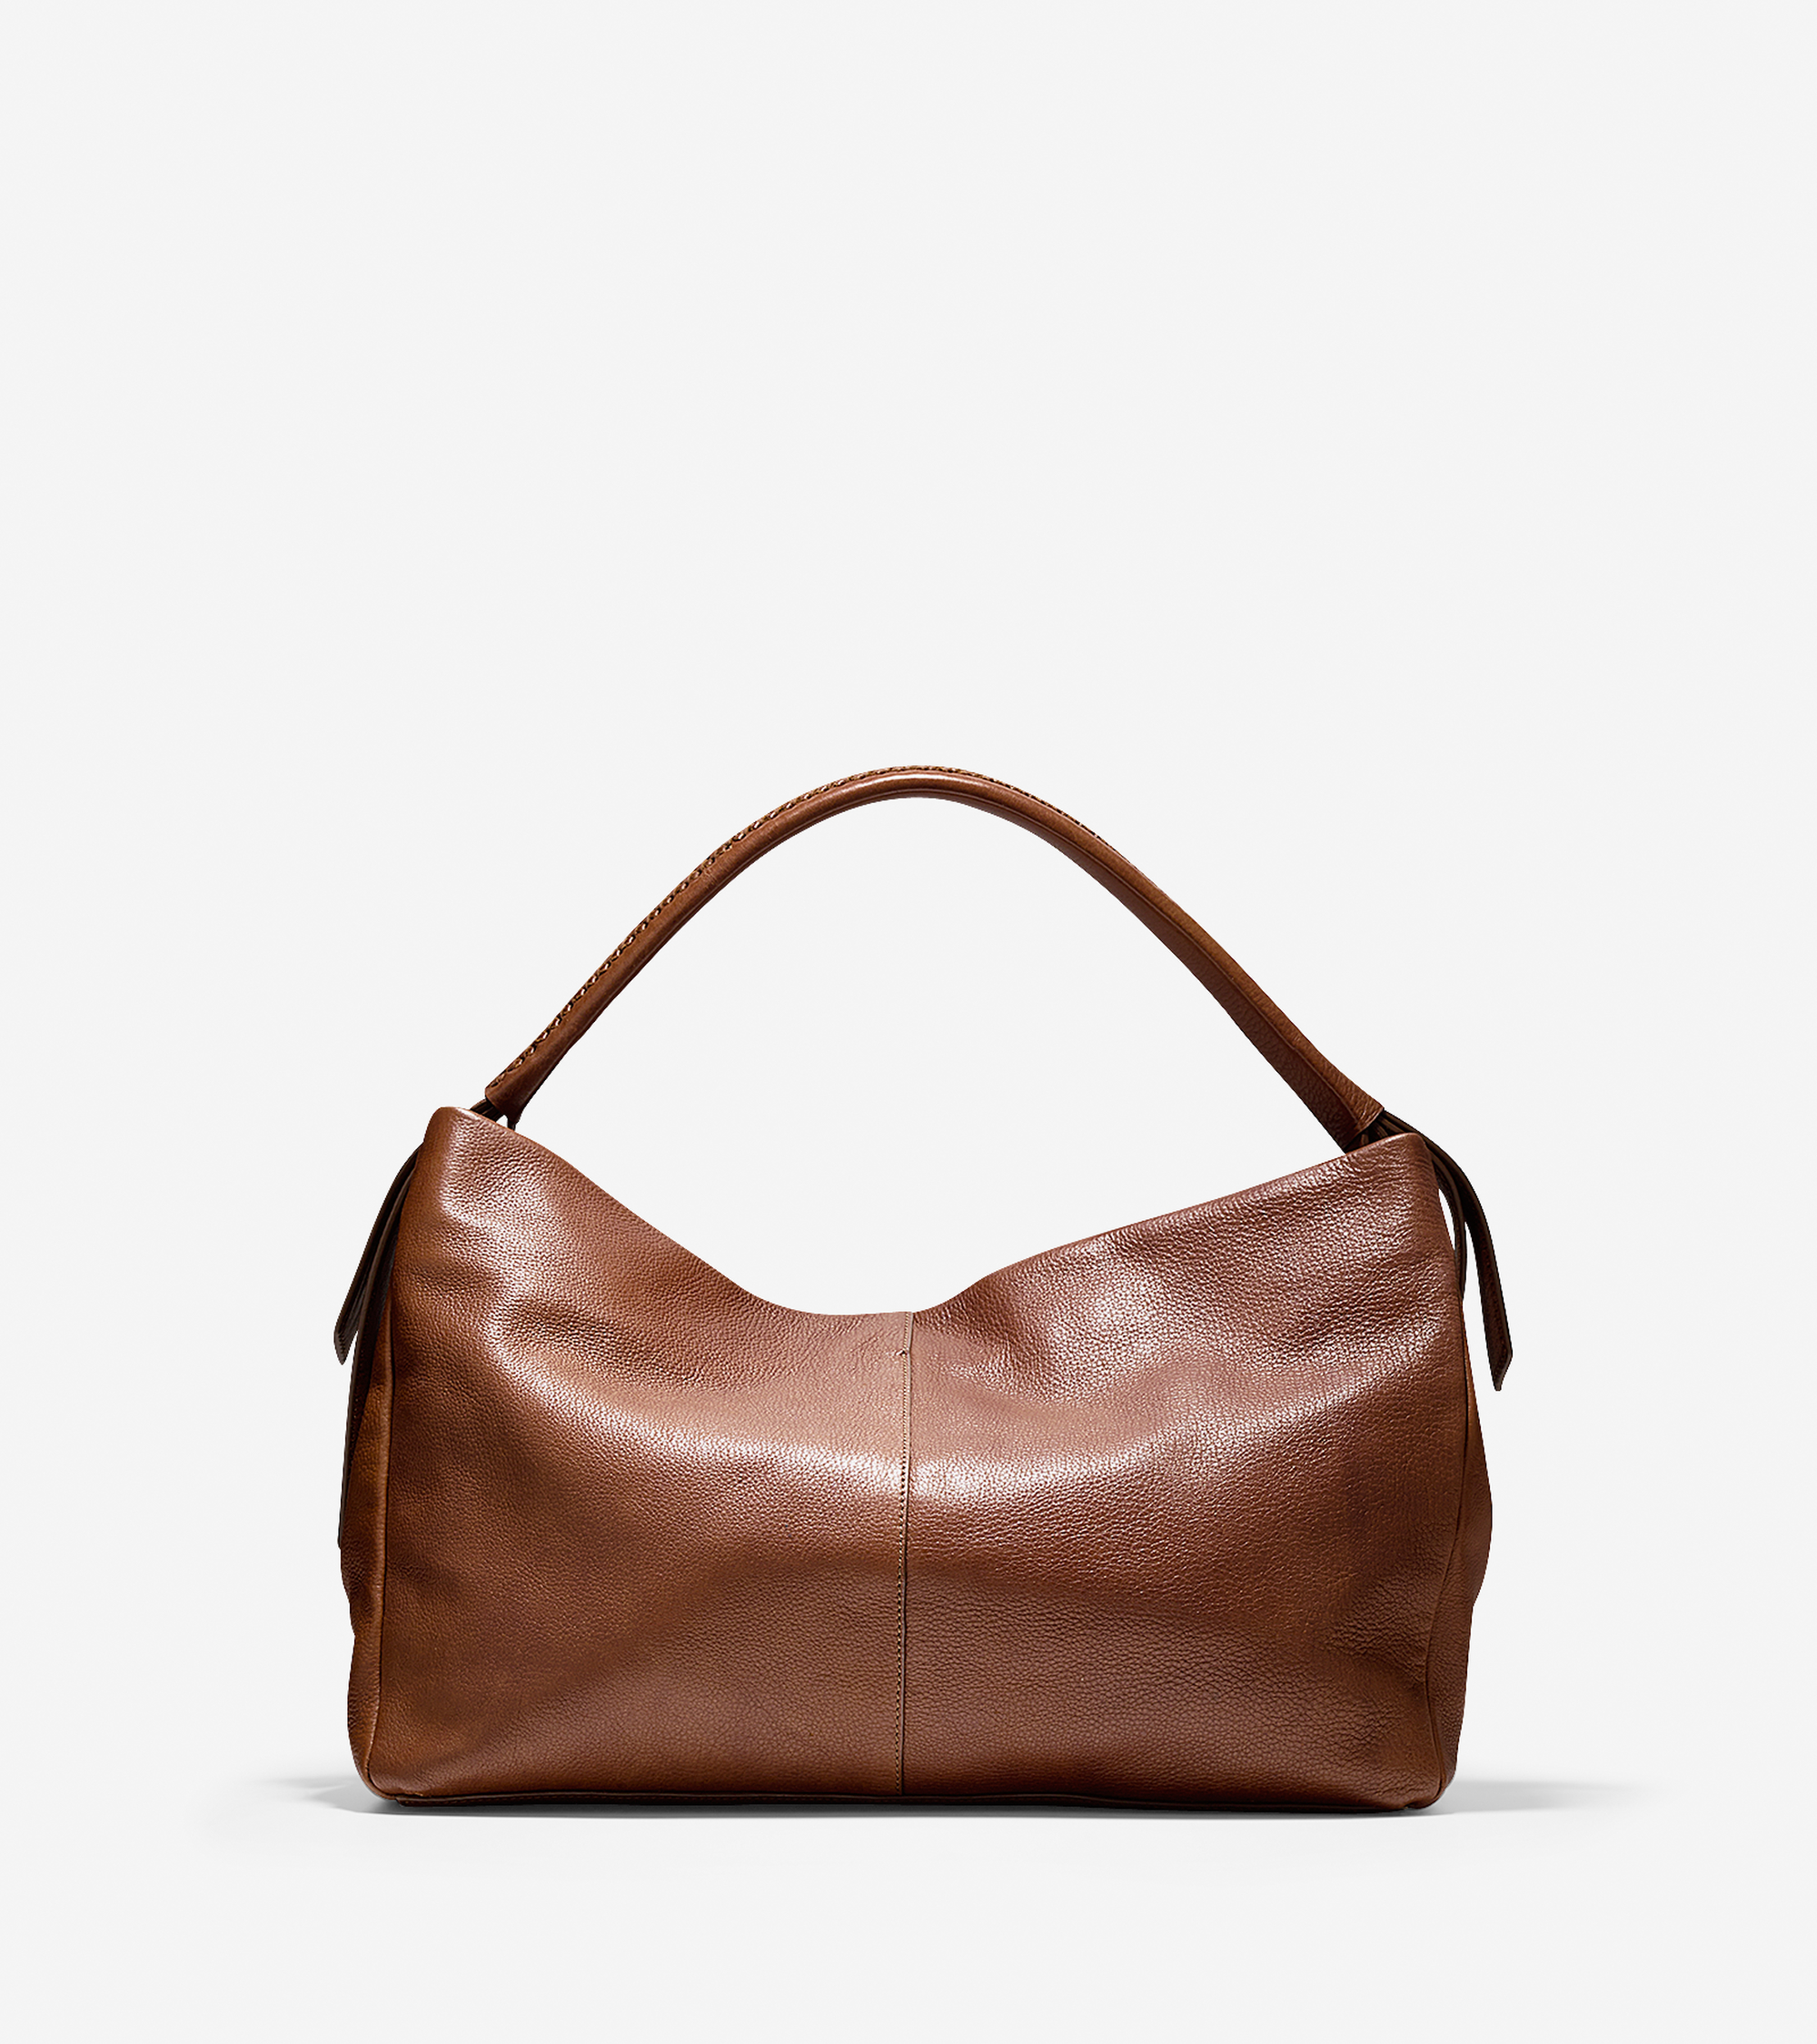 Cole Haan Handbags Sale